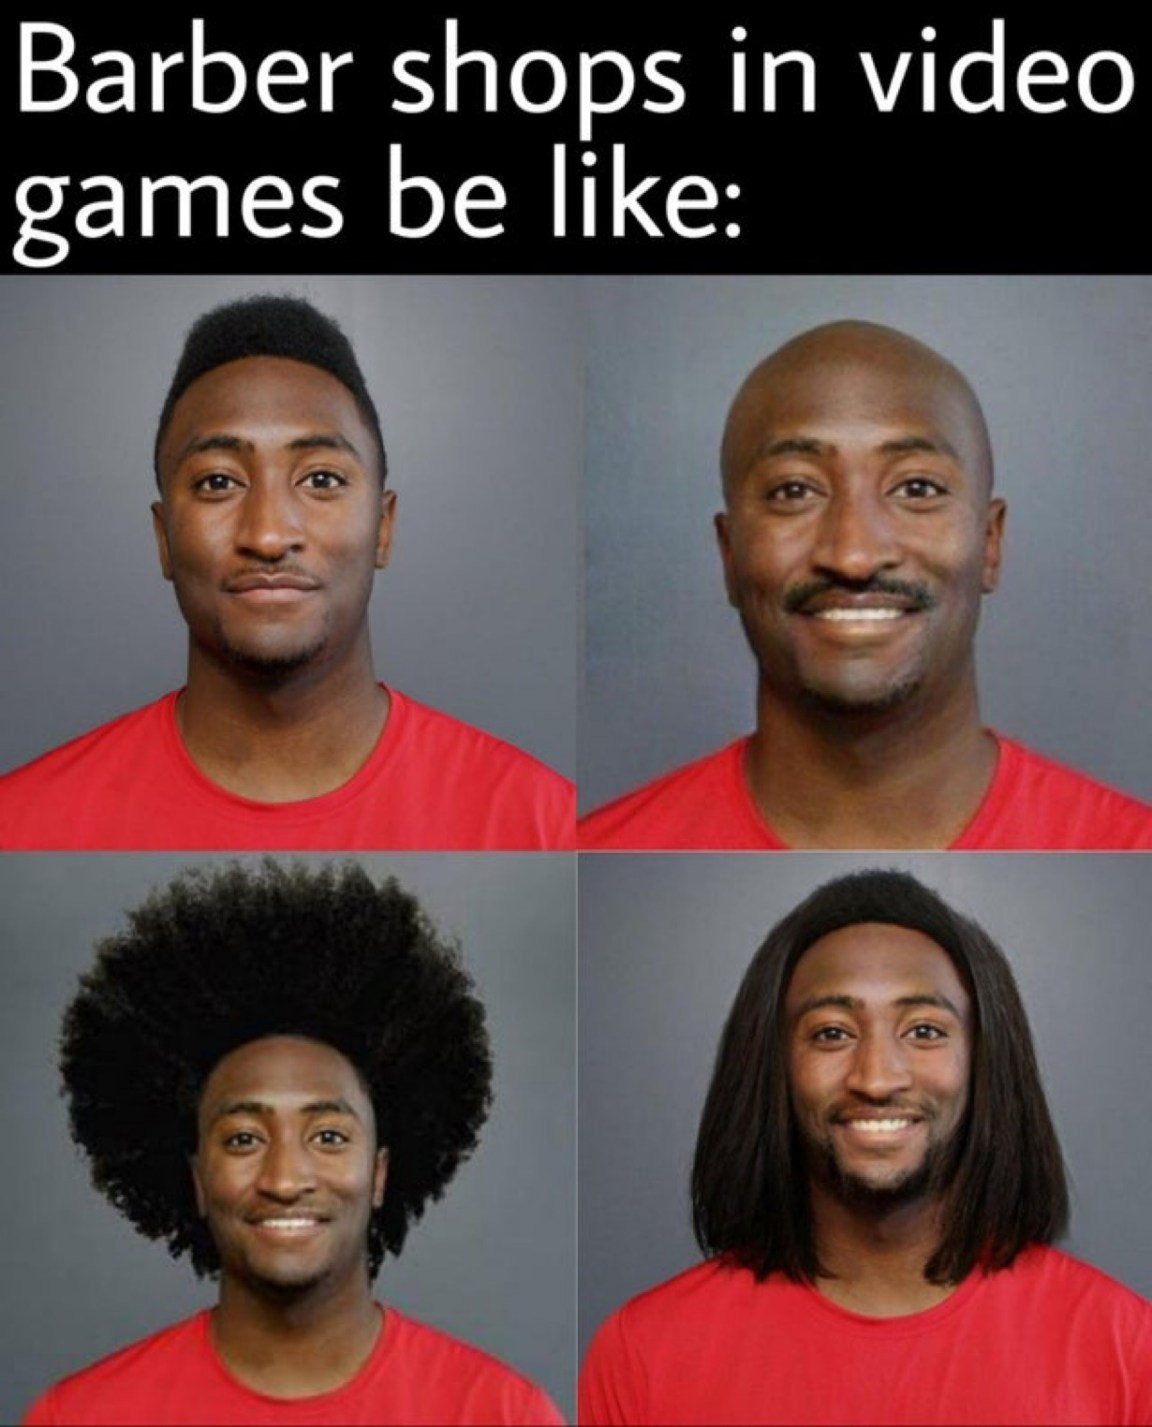 MKBHD on them haircut memes